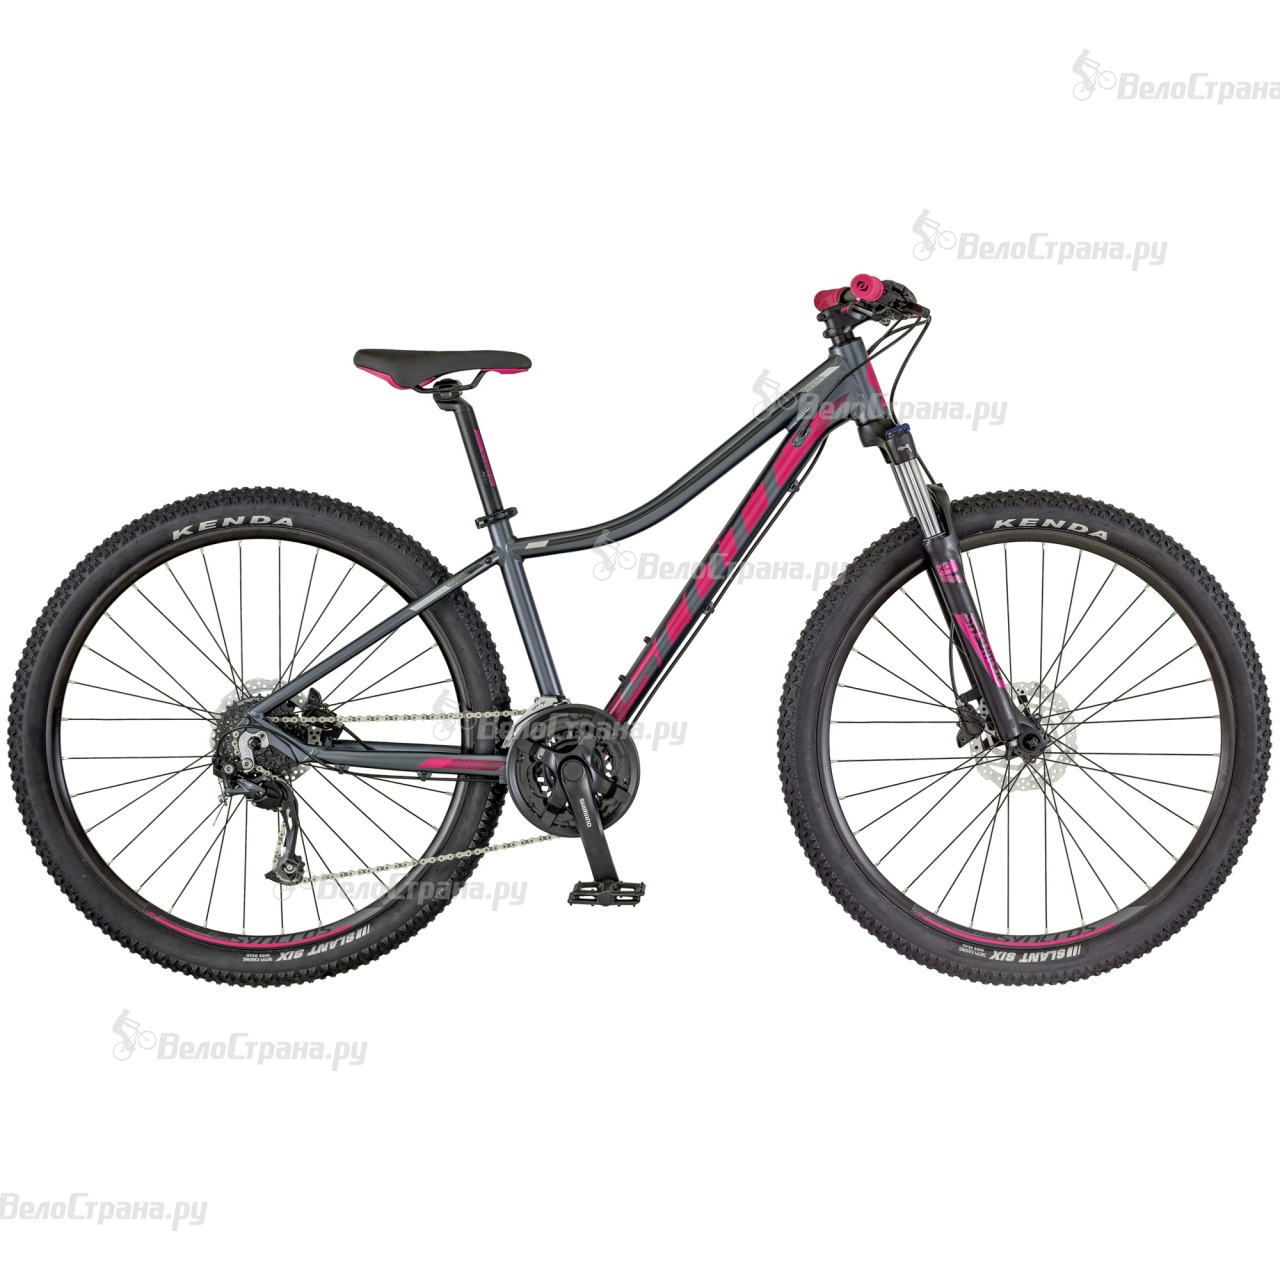 Велосипед Scott Contessa 720 (2018) велосипед scott contessa solace 15 compact 2015